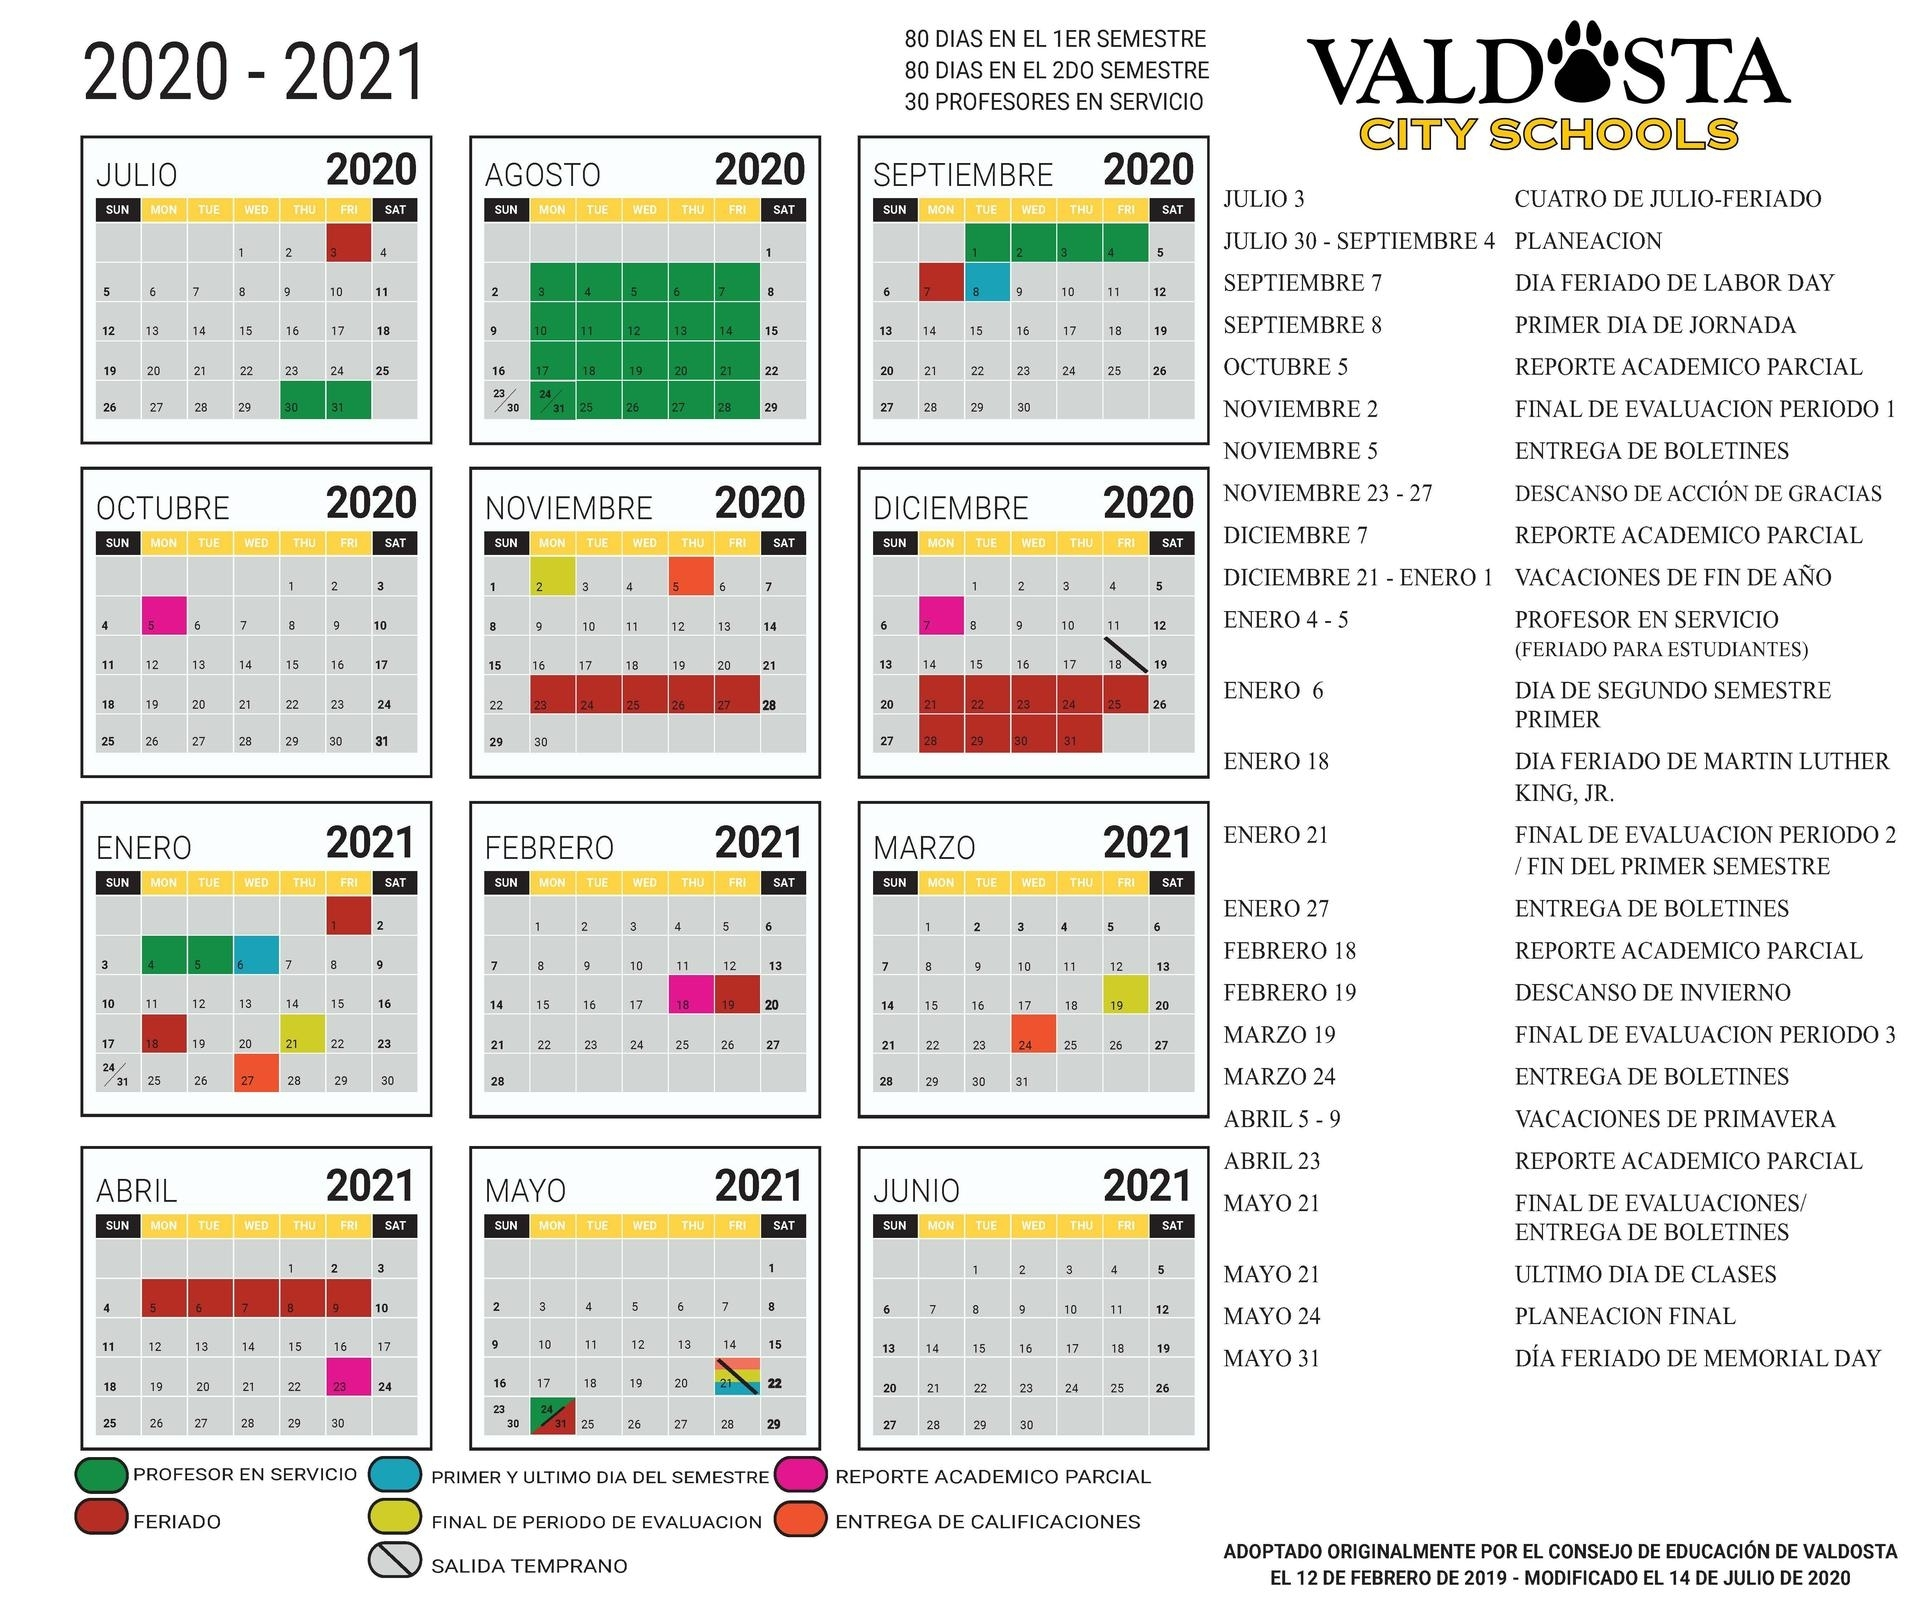 2020 - 2021 Academic Calendar – Student Support Services